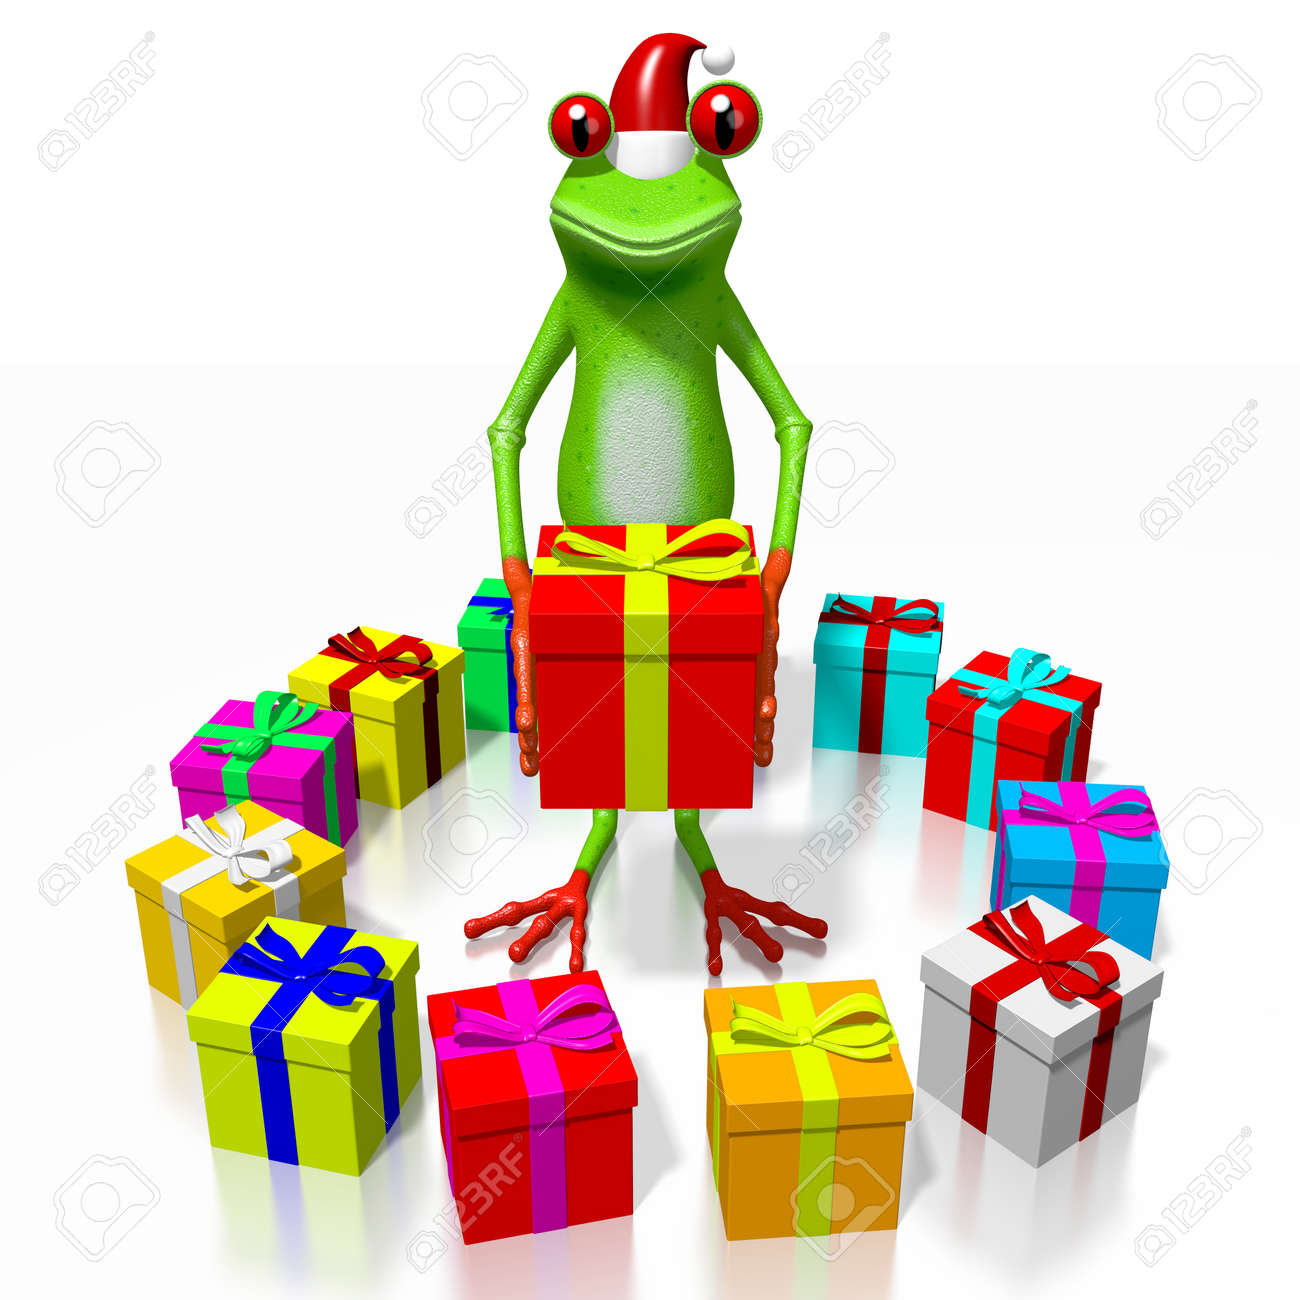 3d cartoon frog and gift boxes christmas concept stock photo 3d cartoon frog and gift boxes christmas concept stock photo 79788521 negle Gallery